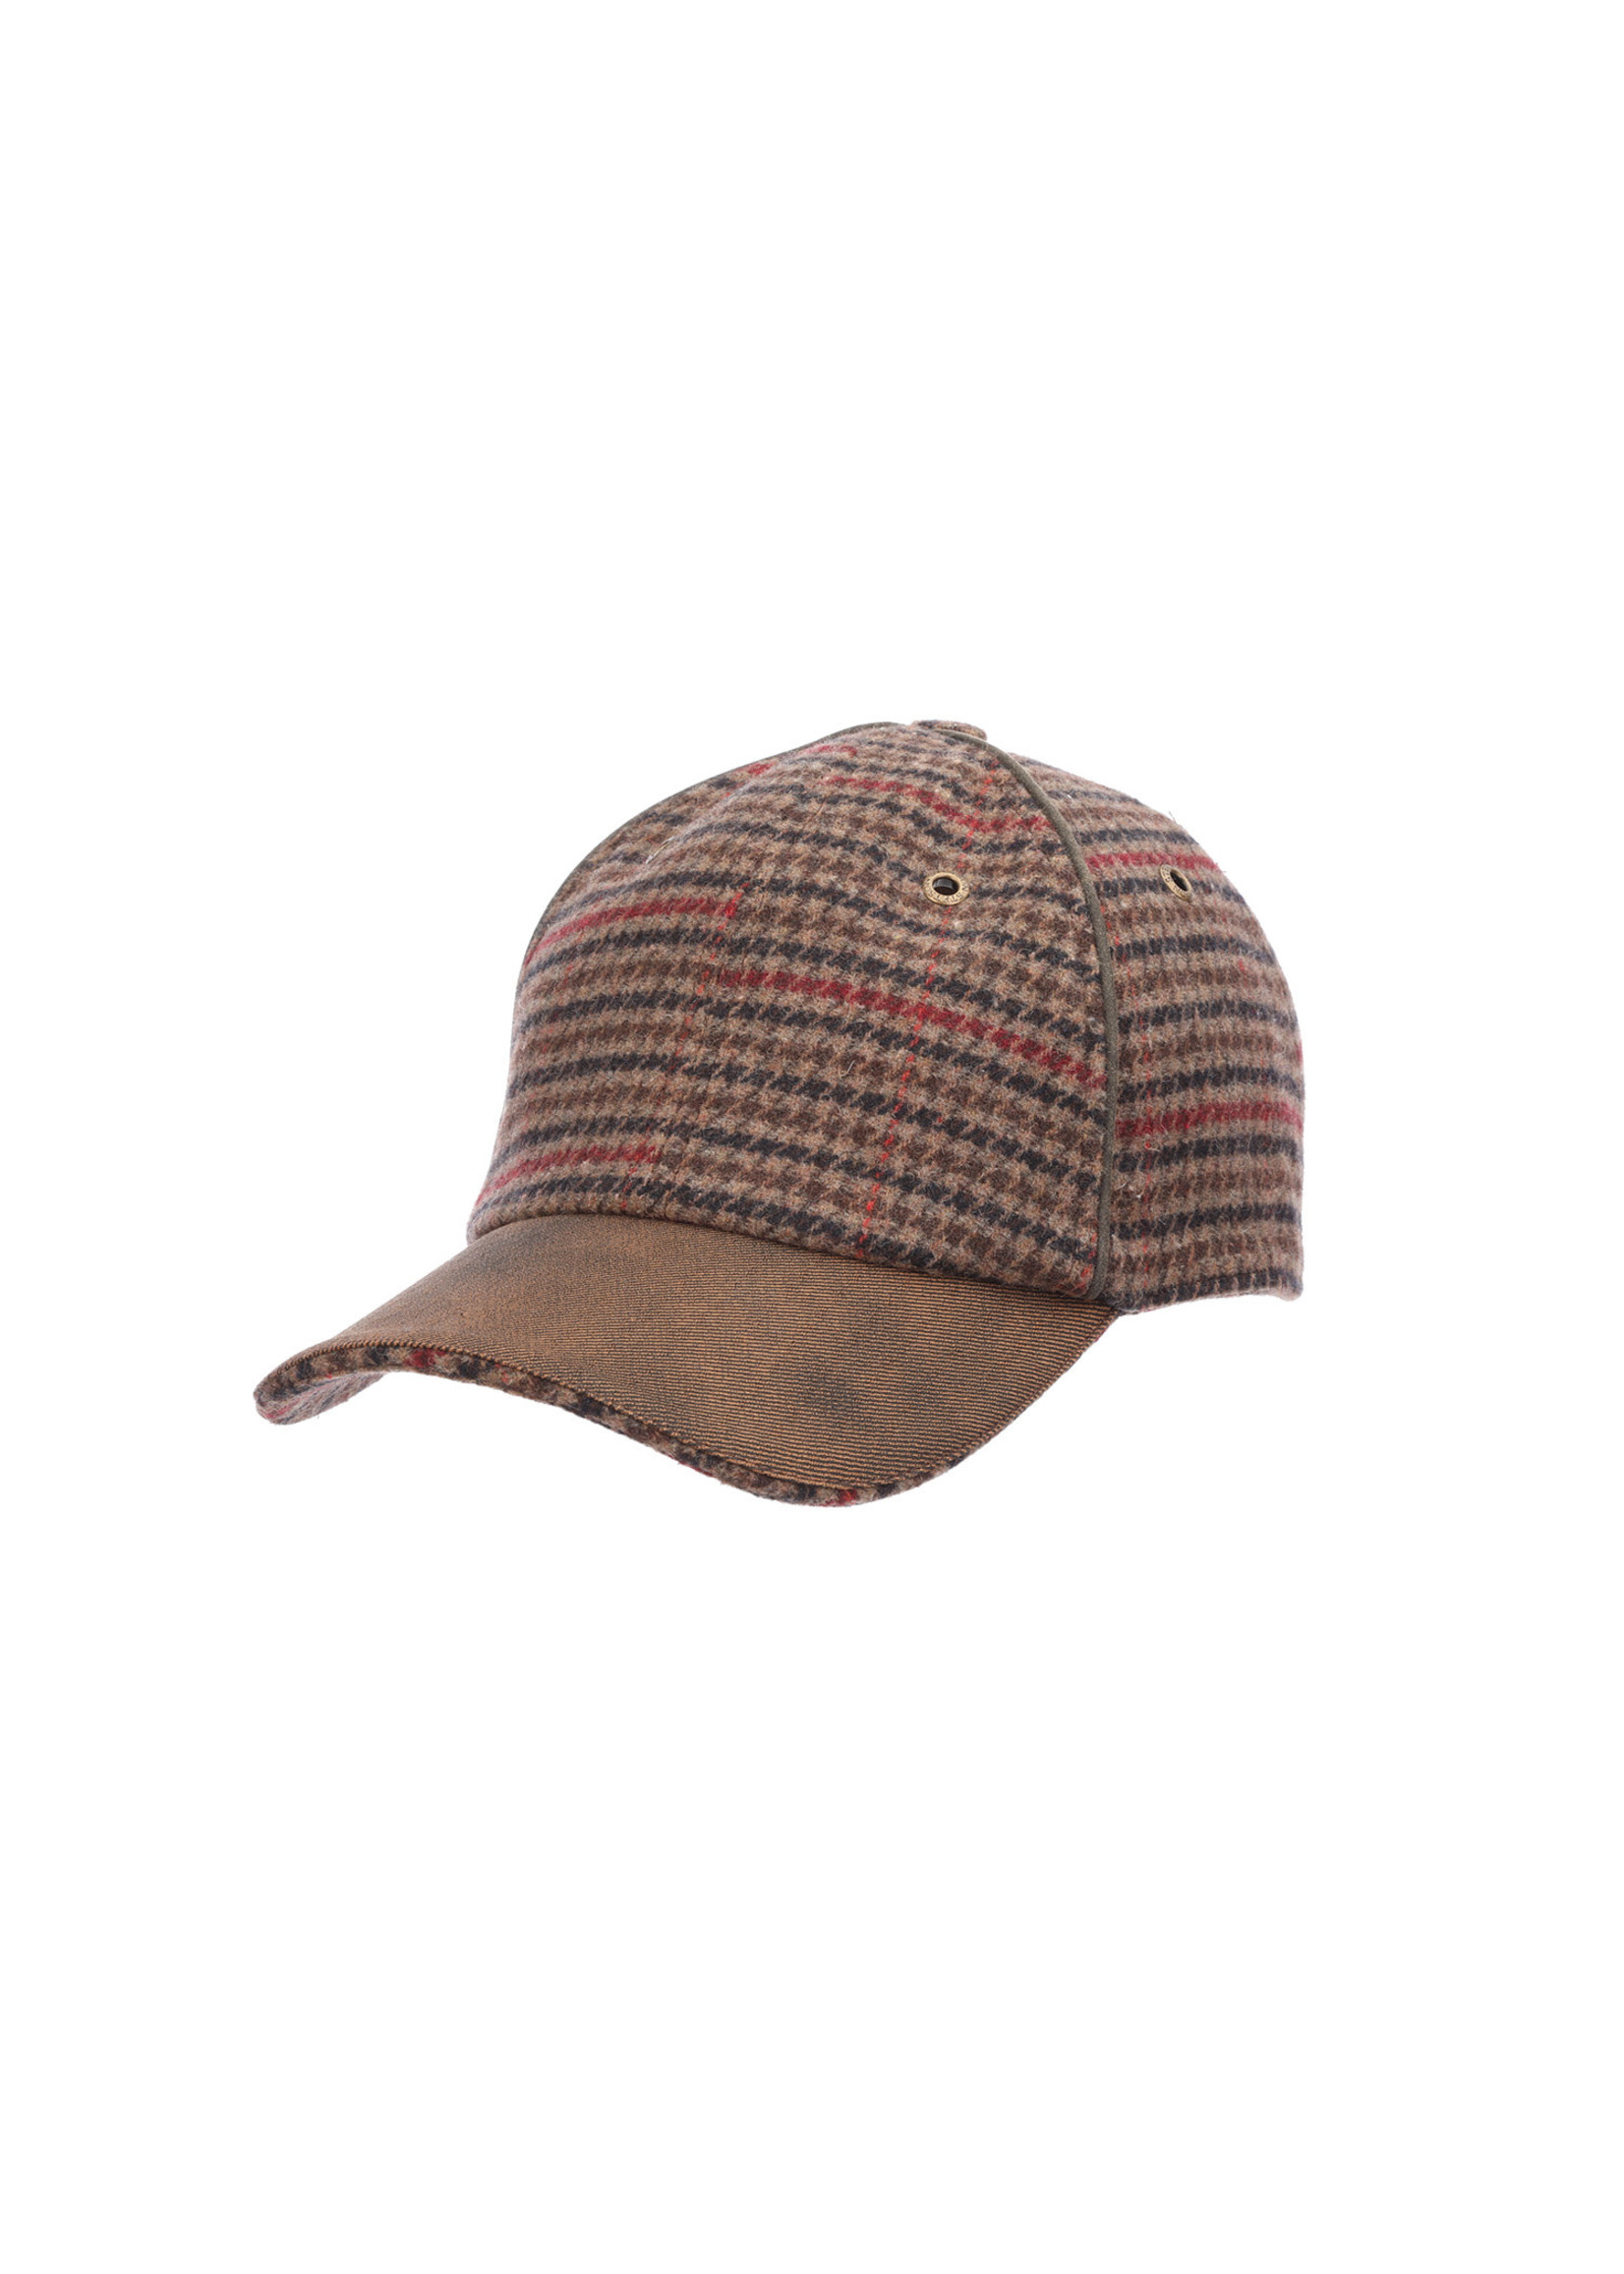 Stetson Salvage by Stetson Hats